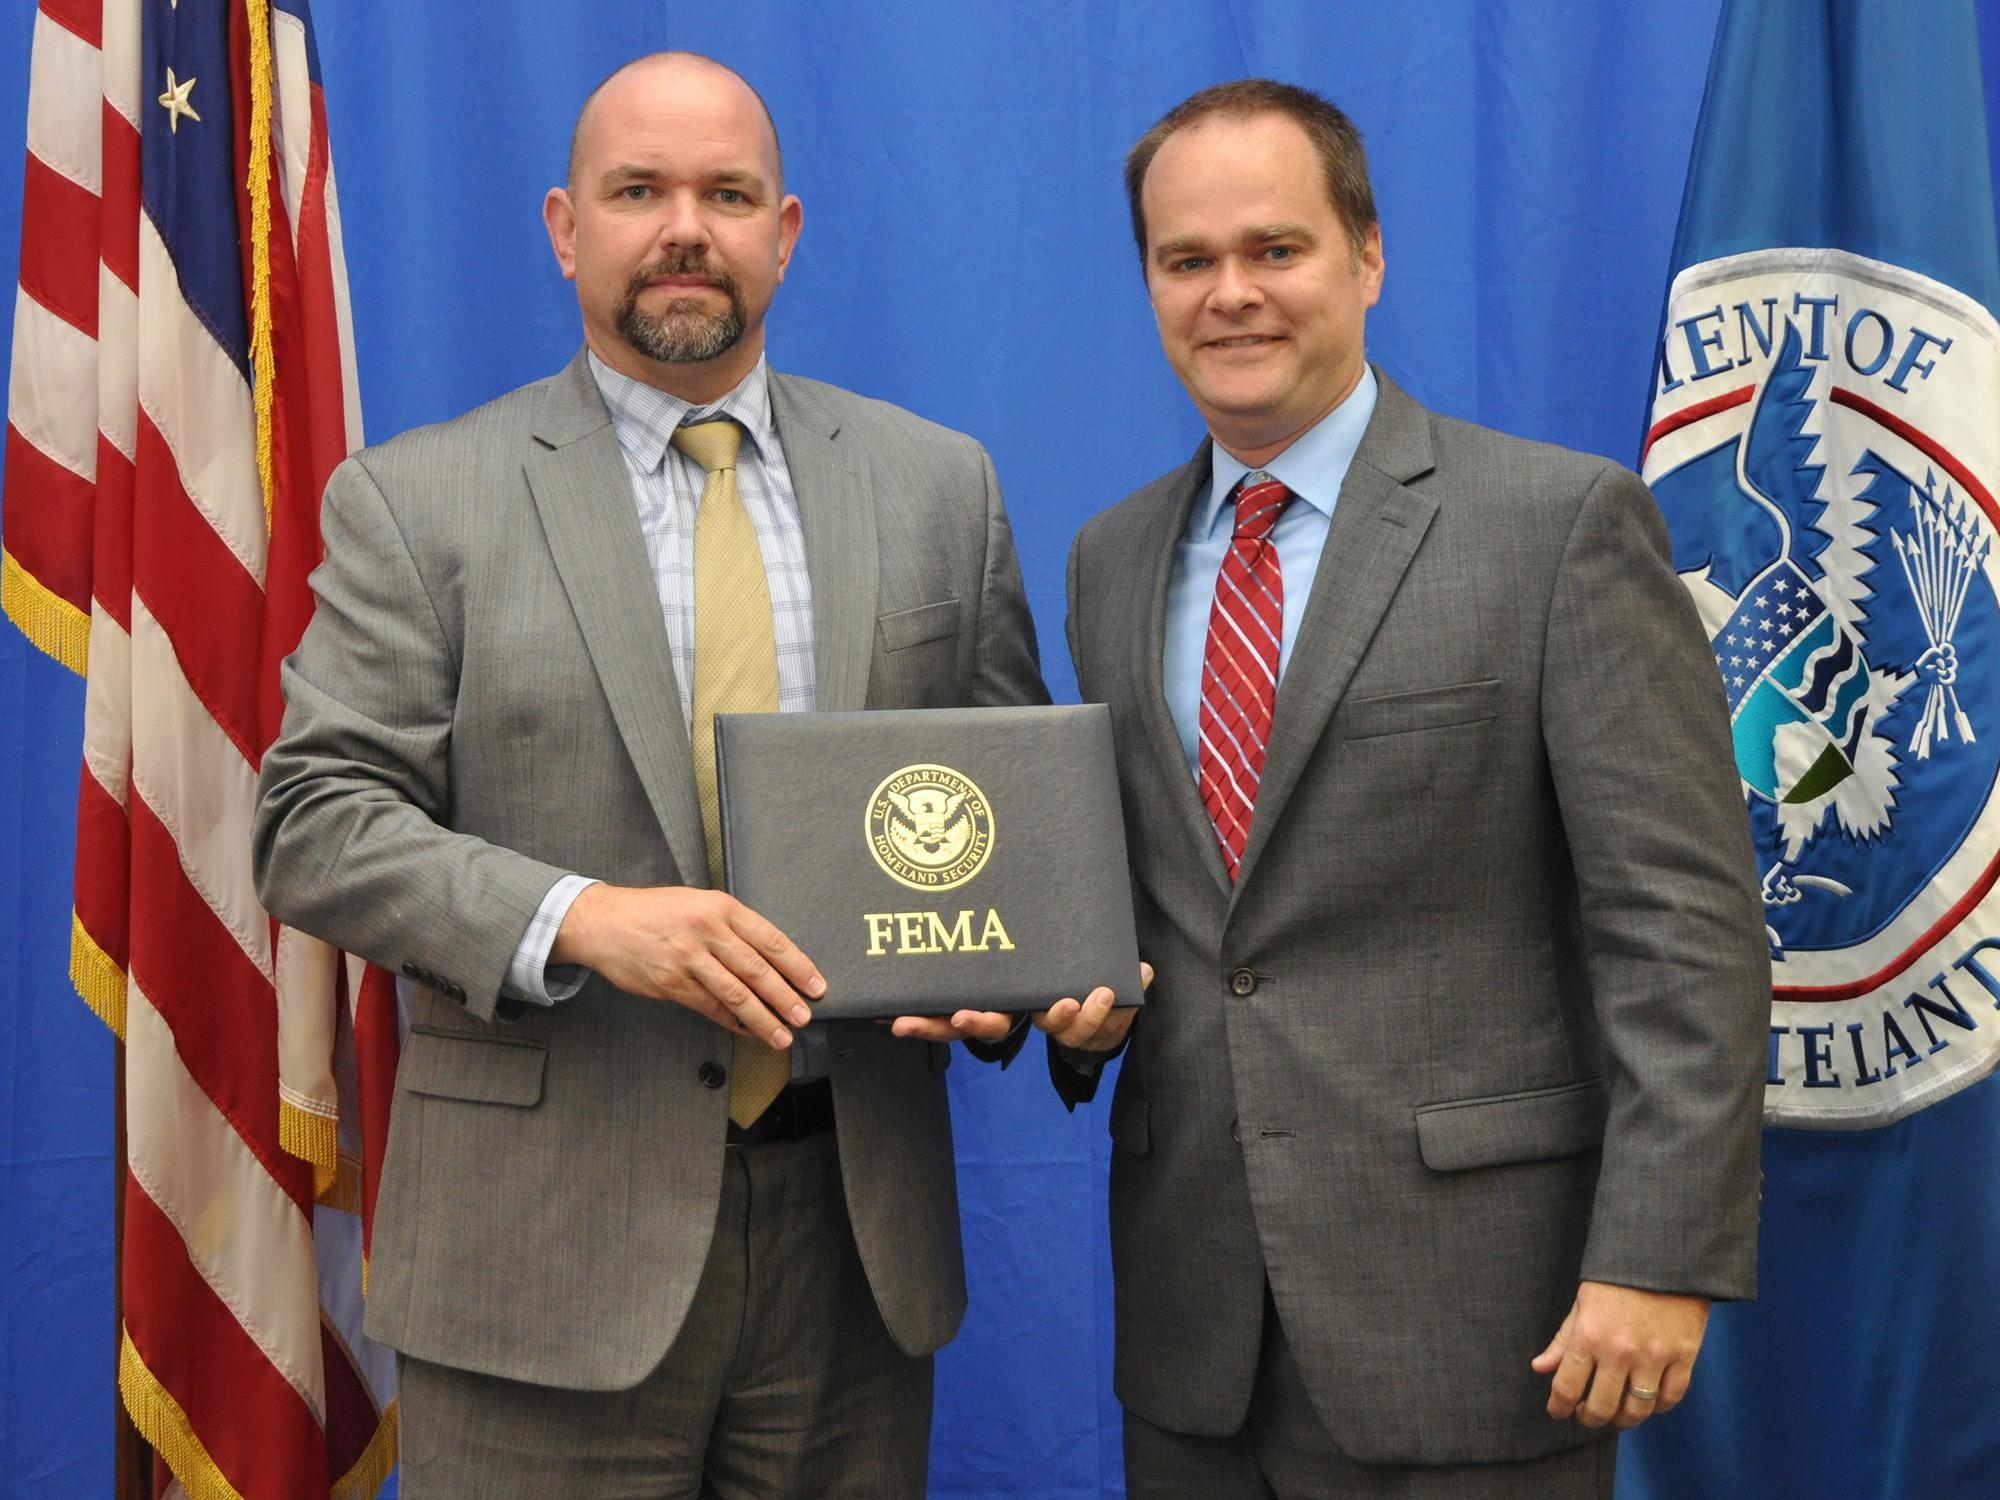 Two men on a stage holding a FEMA certificate and looking at the camera.